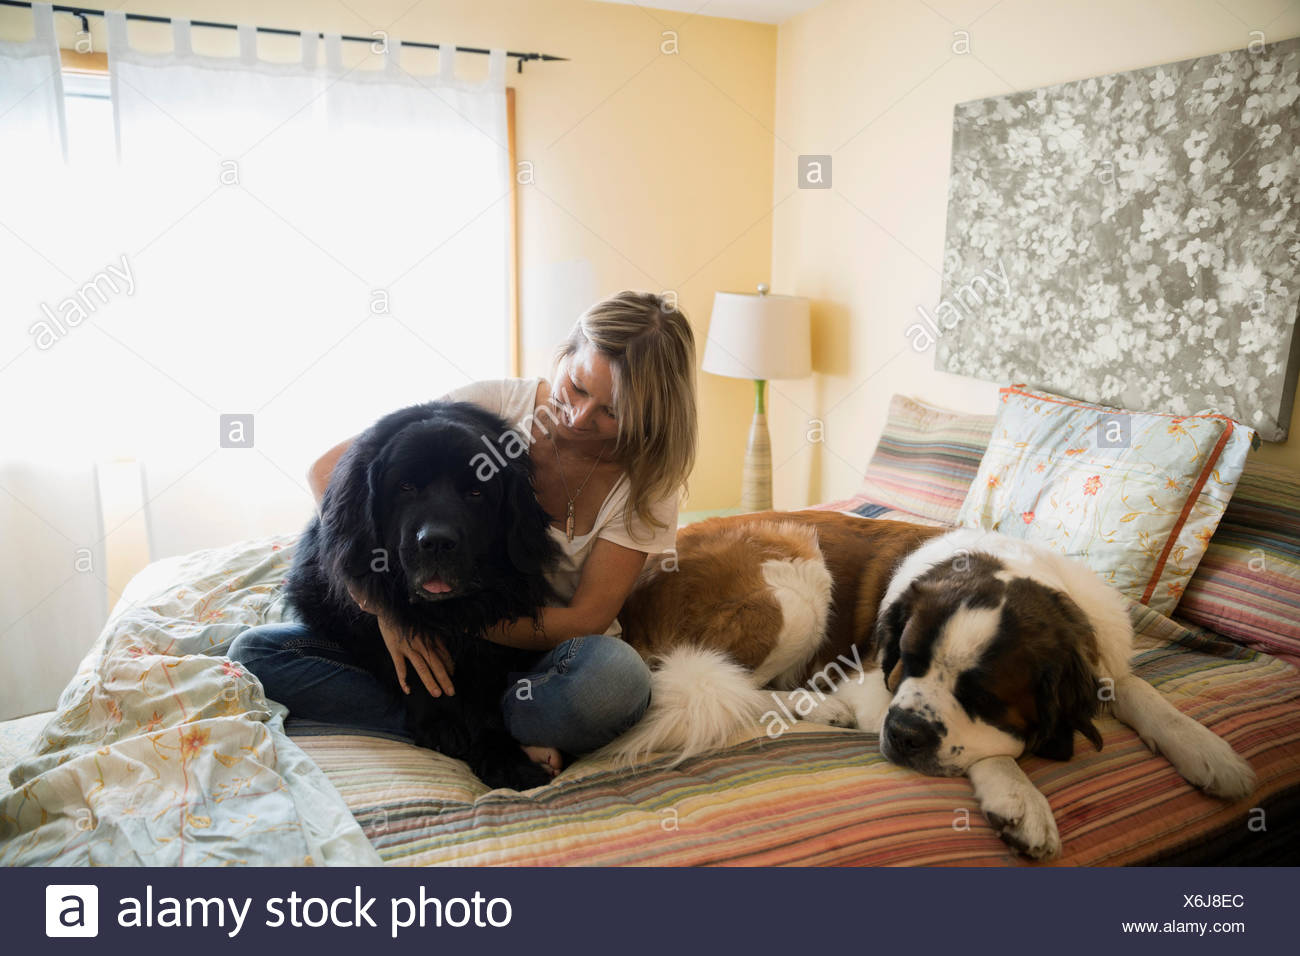 Woman cuddling big dogs in bed - Stock Image